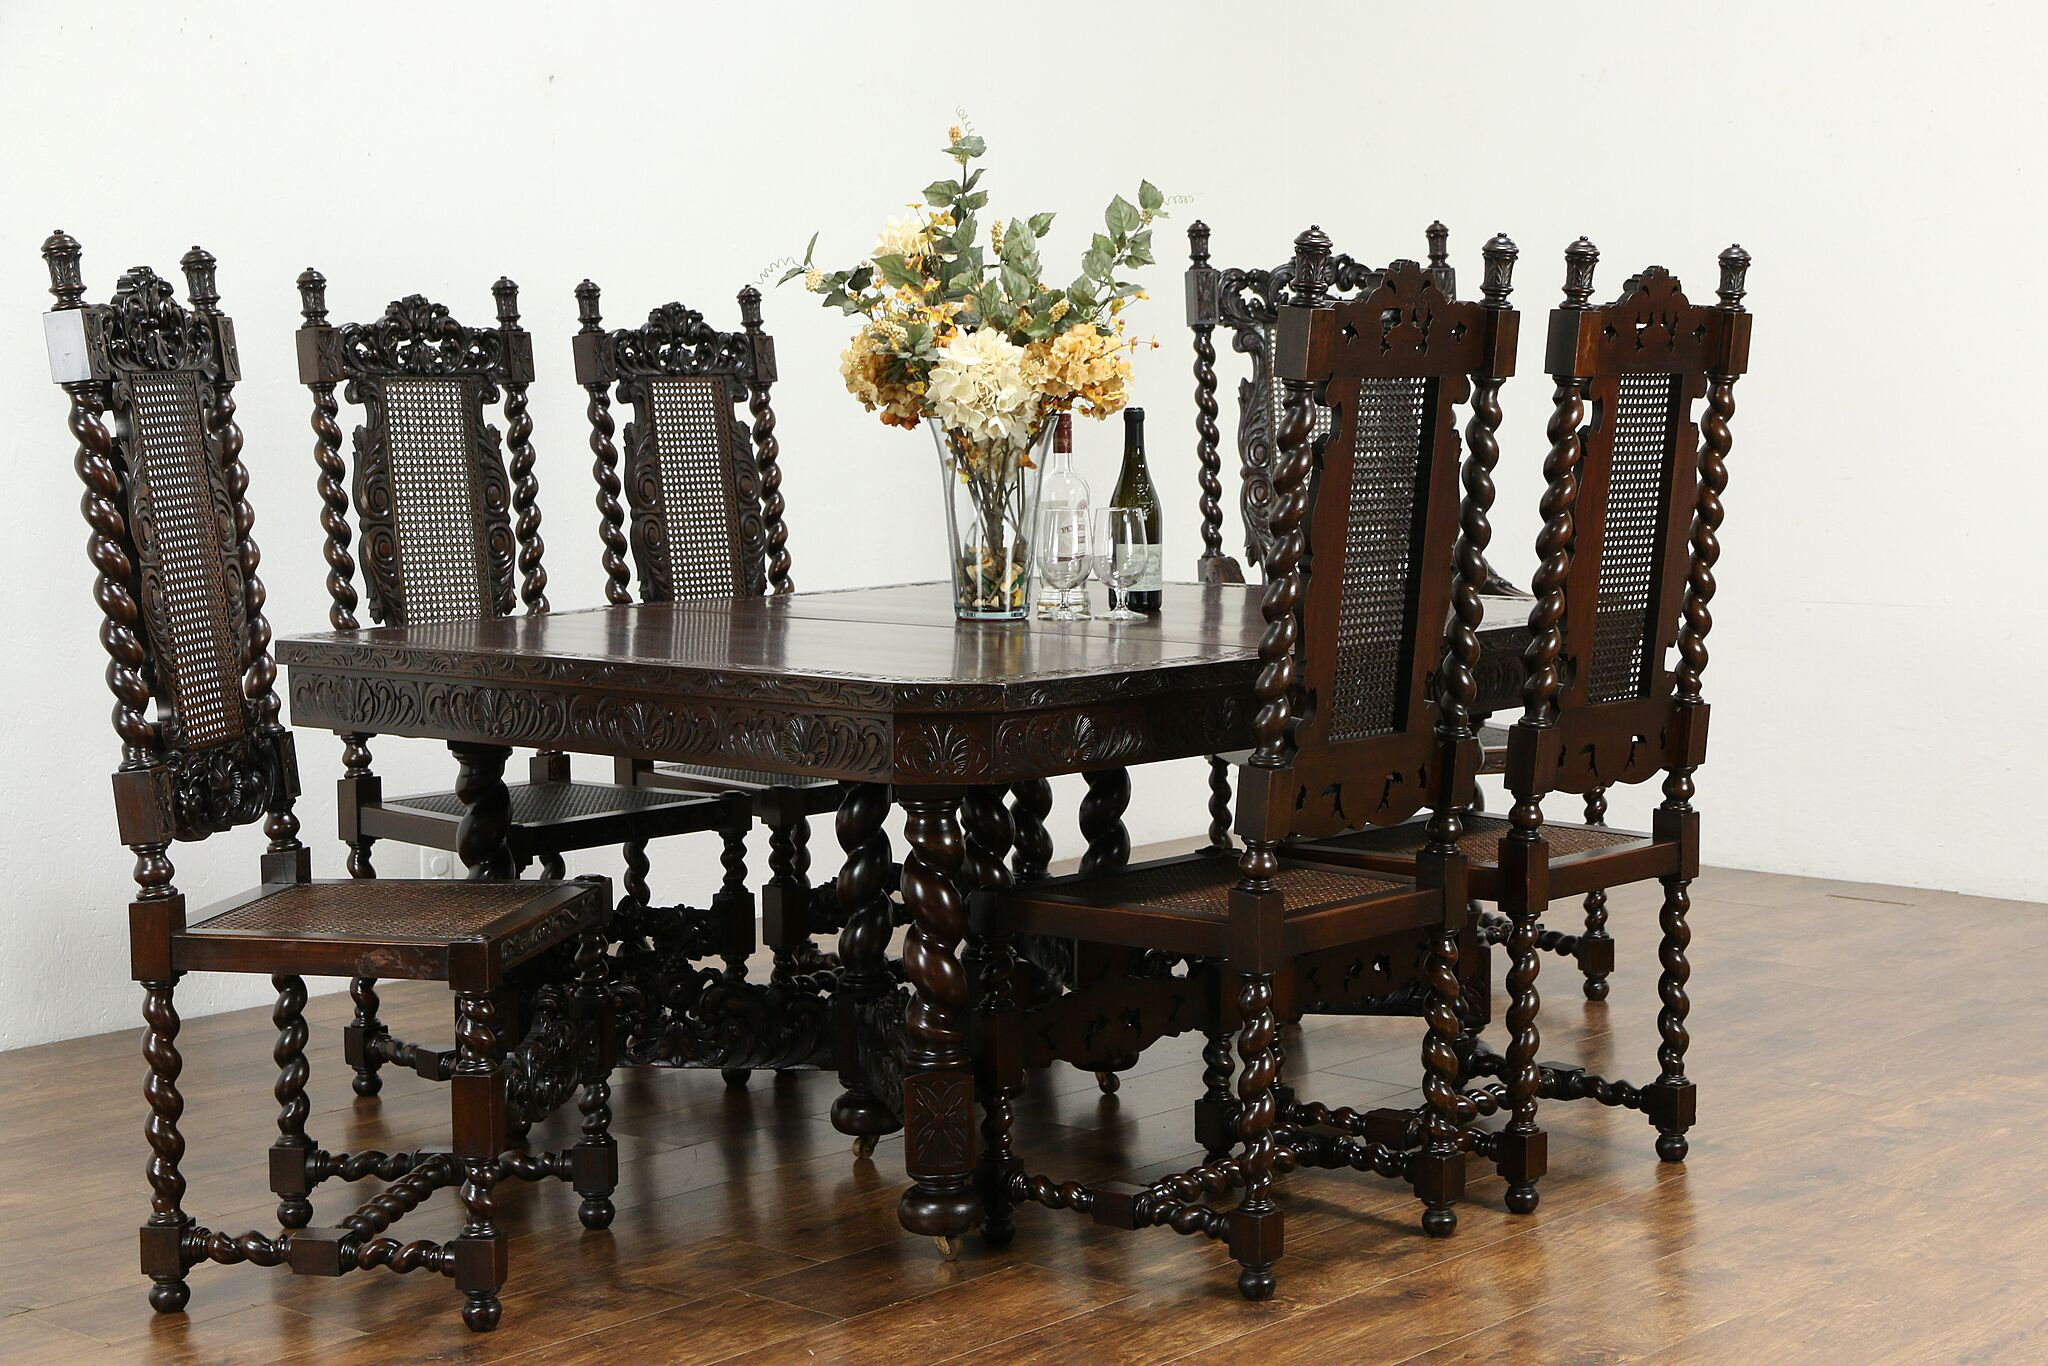 Cucina Letters Kitchen Decor, Sold English Tudor Antique Barley Twist Dining Room Set 6 Chairs Table 34723 Harp Gallery Antiques Furniture